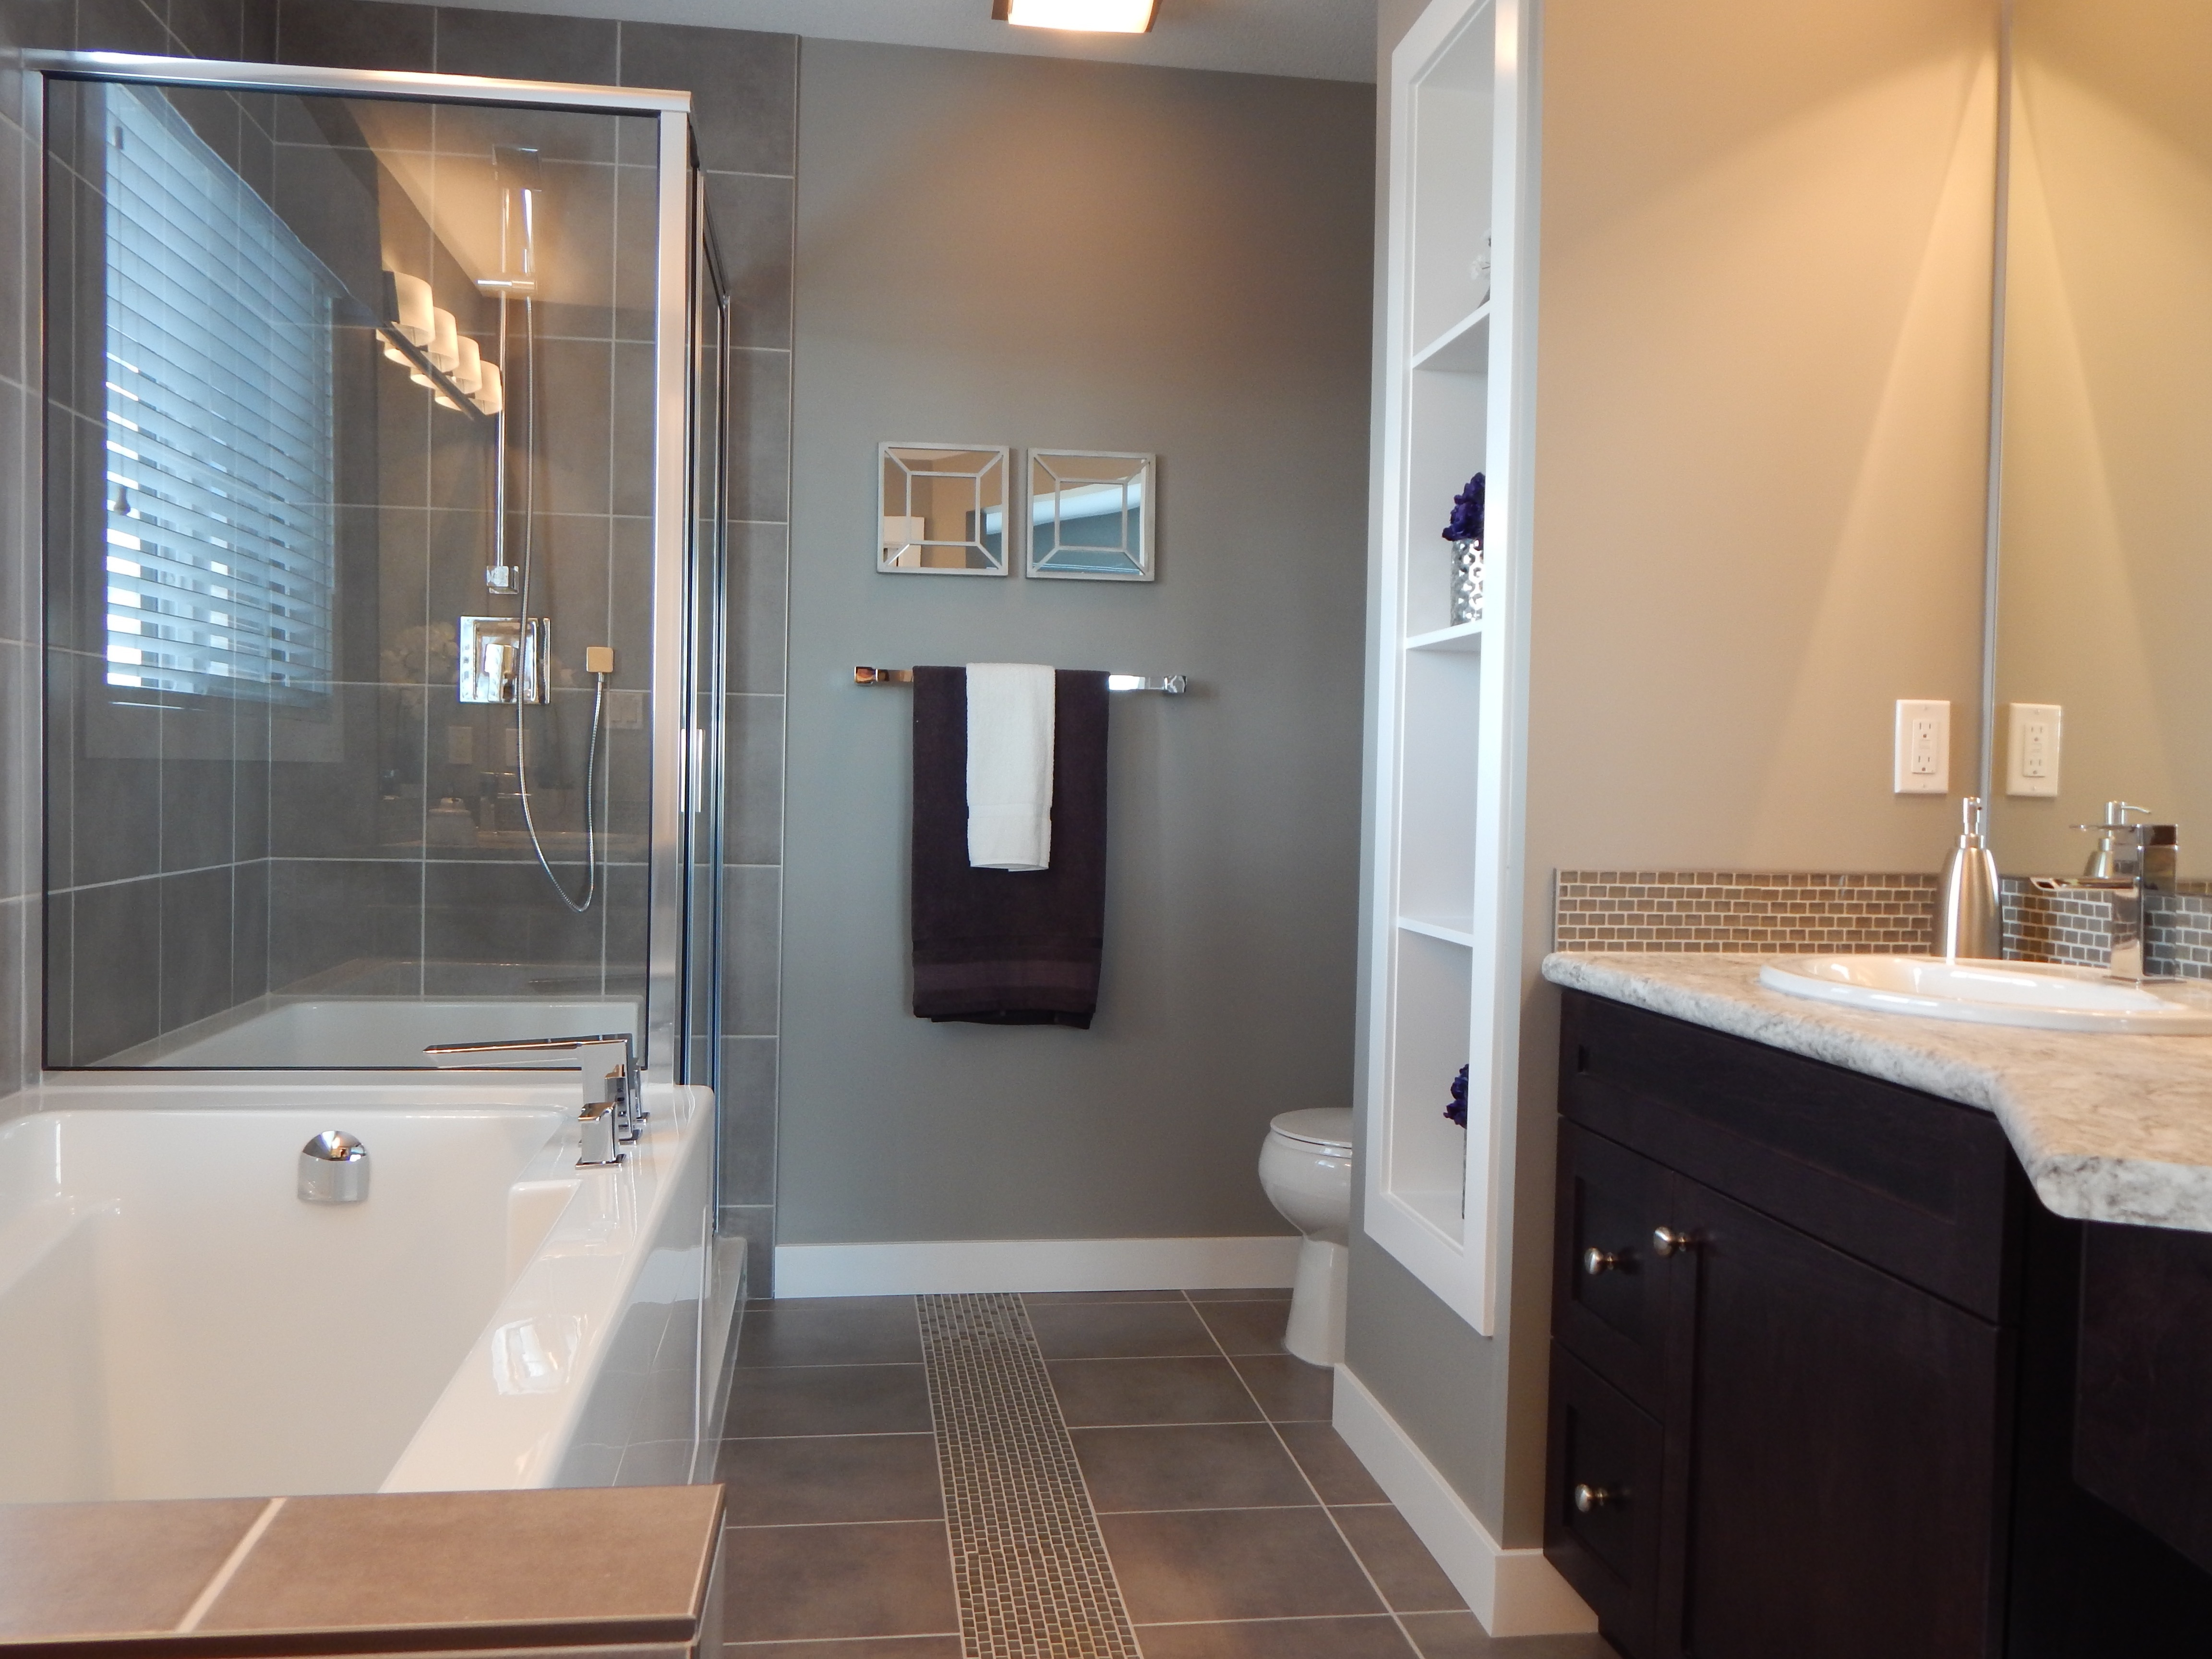 Modern Bathroom Interior With Shower Cabin And Tub Free Image